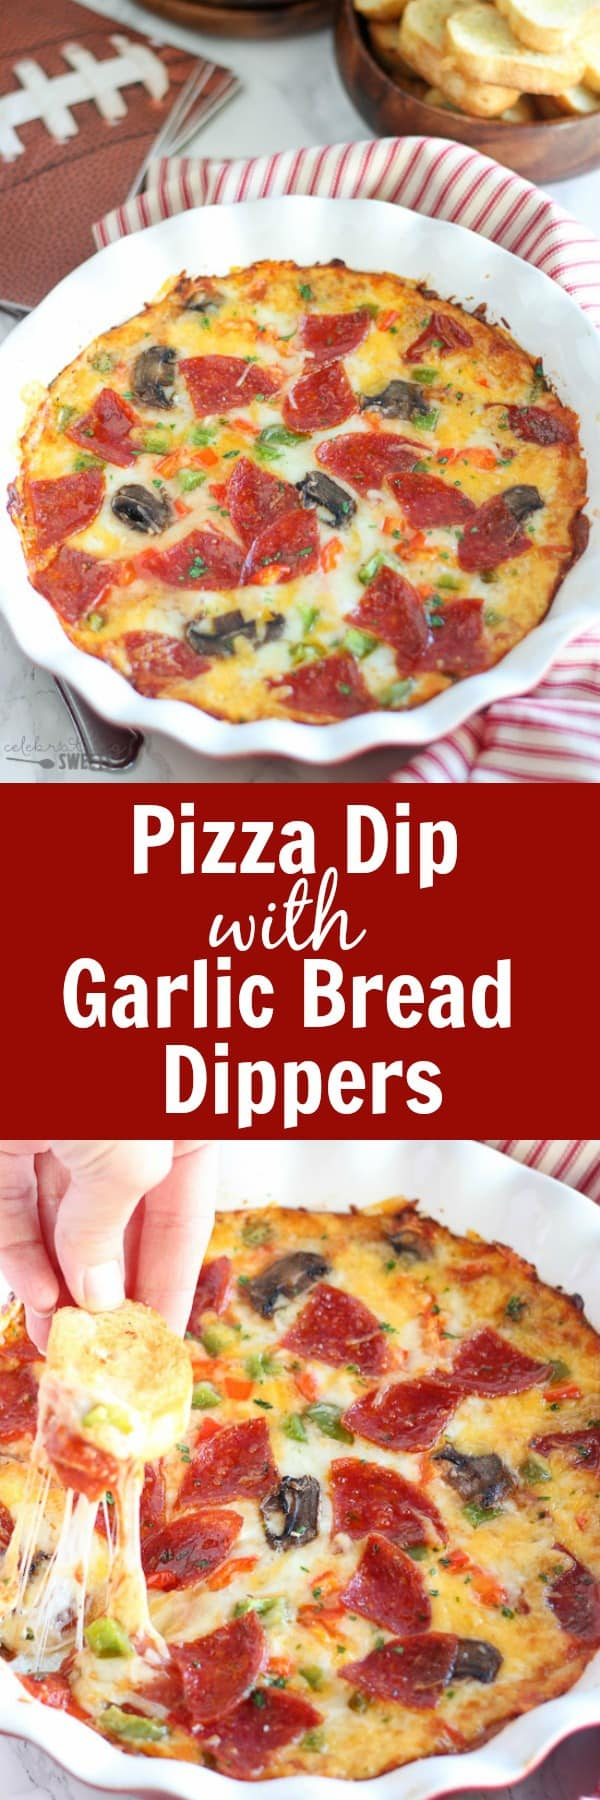 Pizza Dip with Garlic Bread Dippers - Warm and cheesy pizza dip filled with your favorite toppings and served with garlic bread for dipping. Perfect for game day!